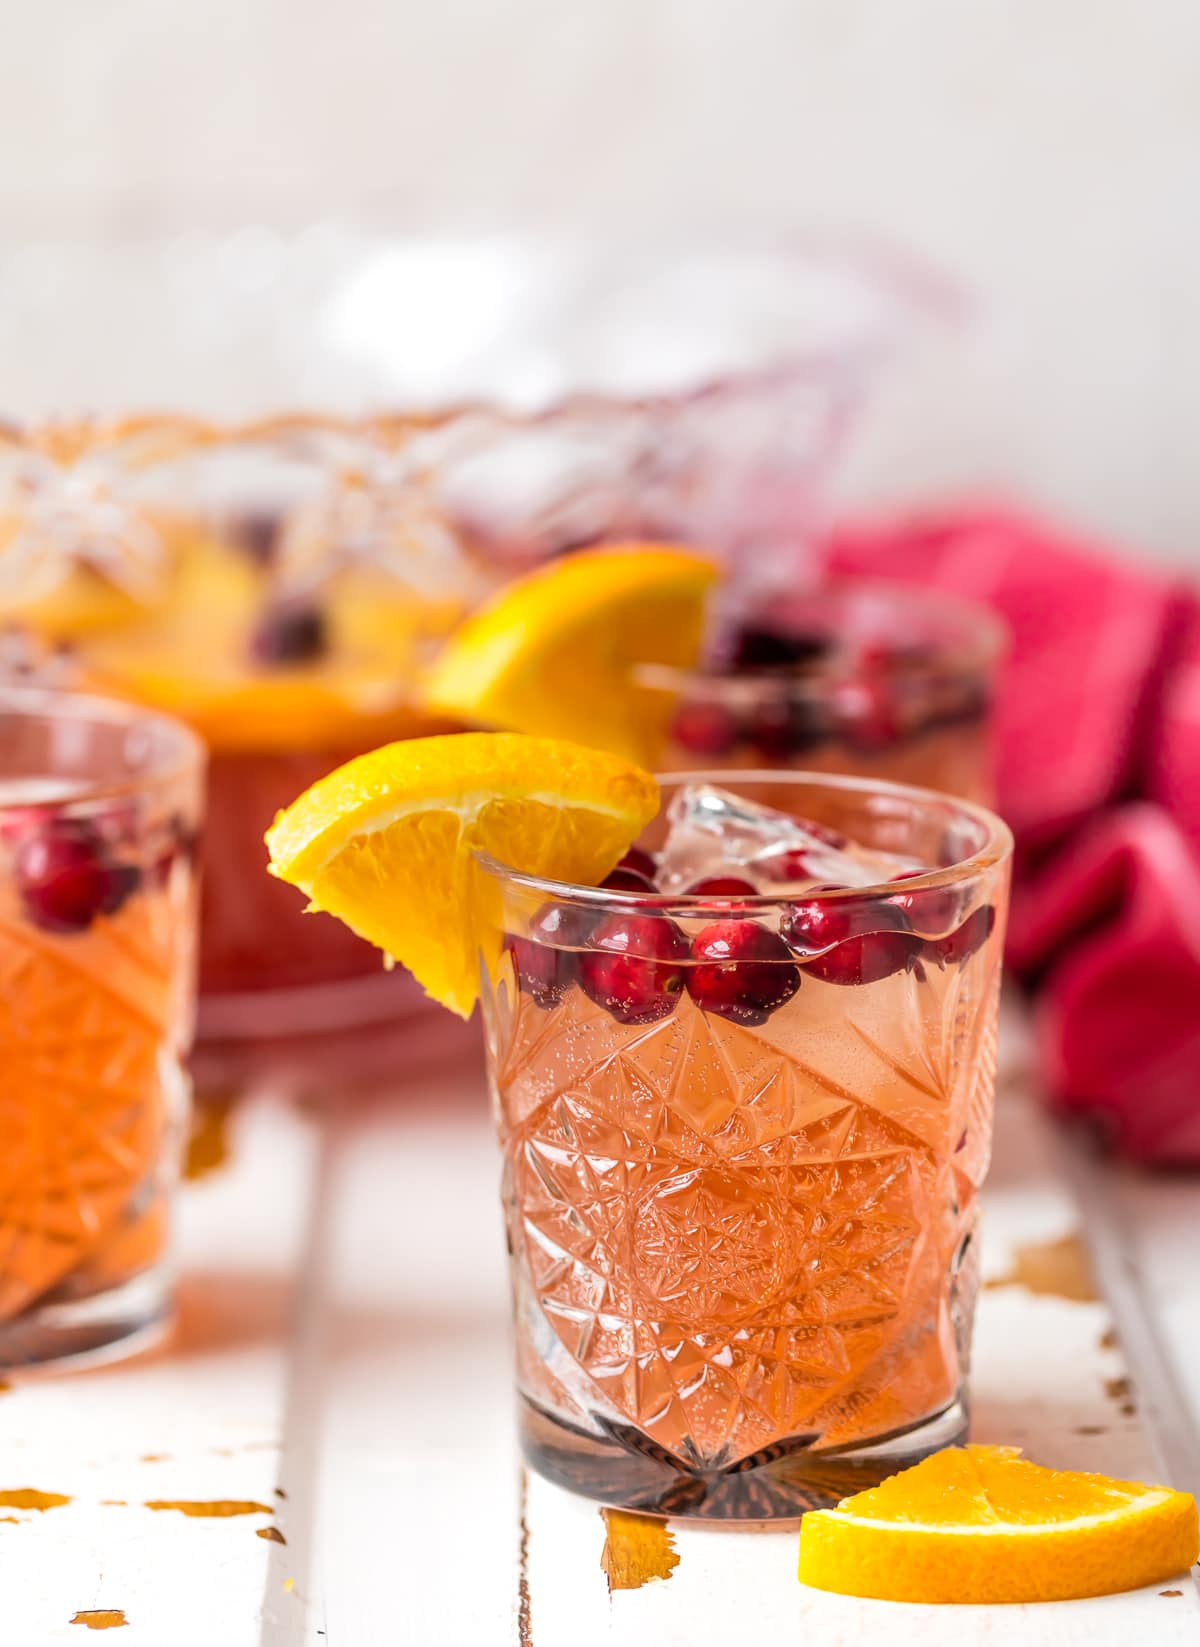 EASY HOLIDAY PUNCH perfect for Thanksgiving and Christmas! Cranberry Juice, Orange Juice, Ginger Ale, and more! Alcoholic or nonalcoholic versions!! Perfect party punch cocktail for a crowd!